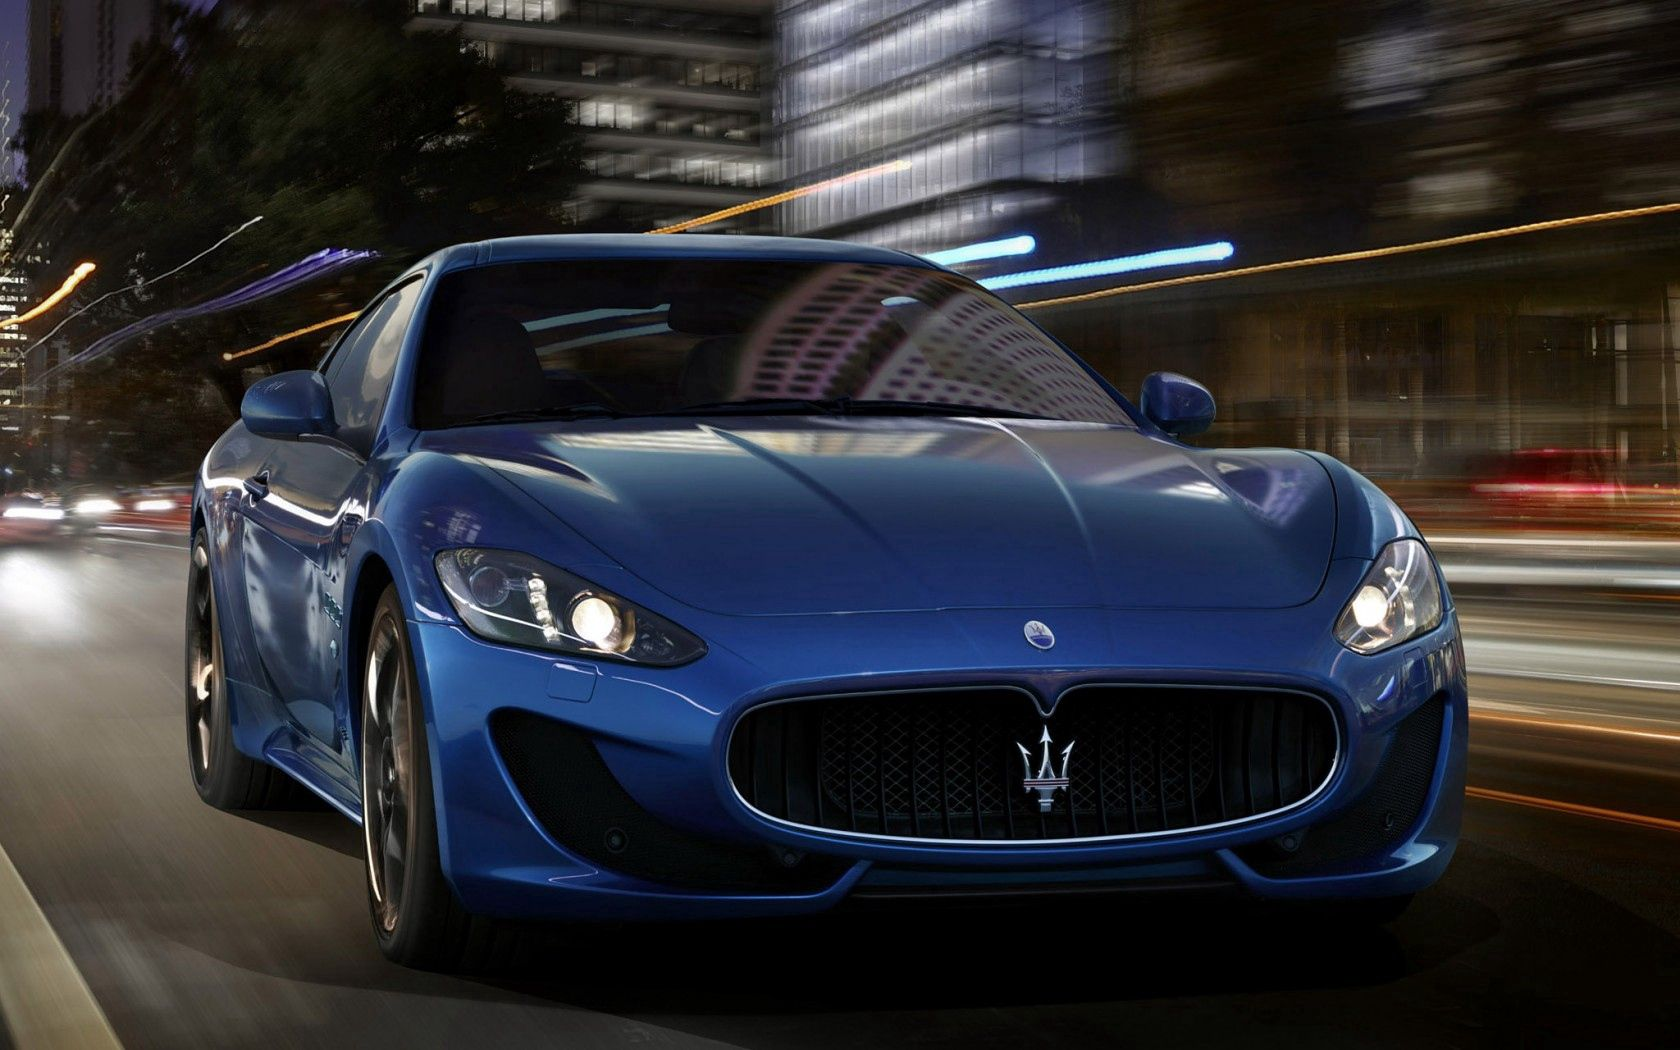 64716 Screensavers and Wallpapers Street for phone. Download Cars, Maserati, Car, Machine, Speed, Street pictures for free